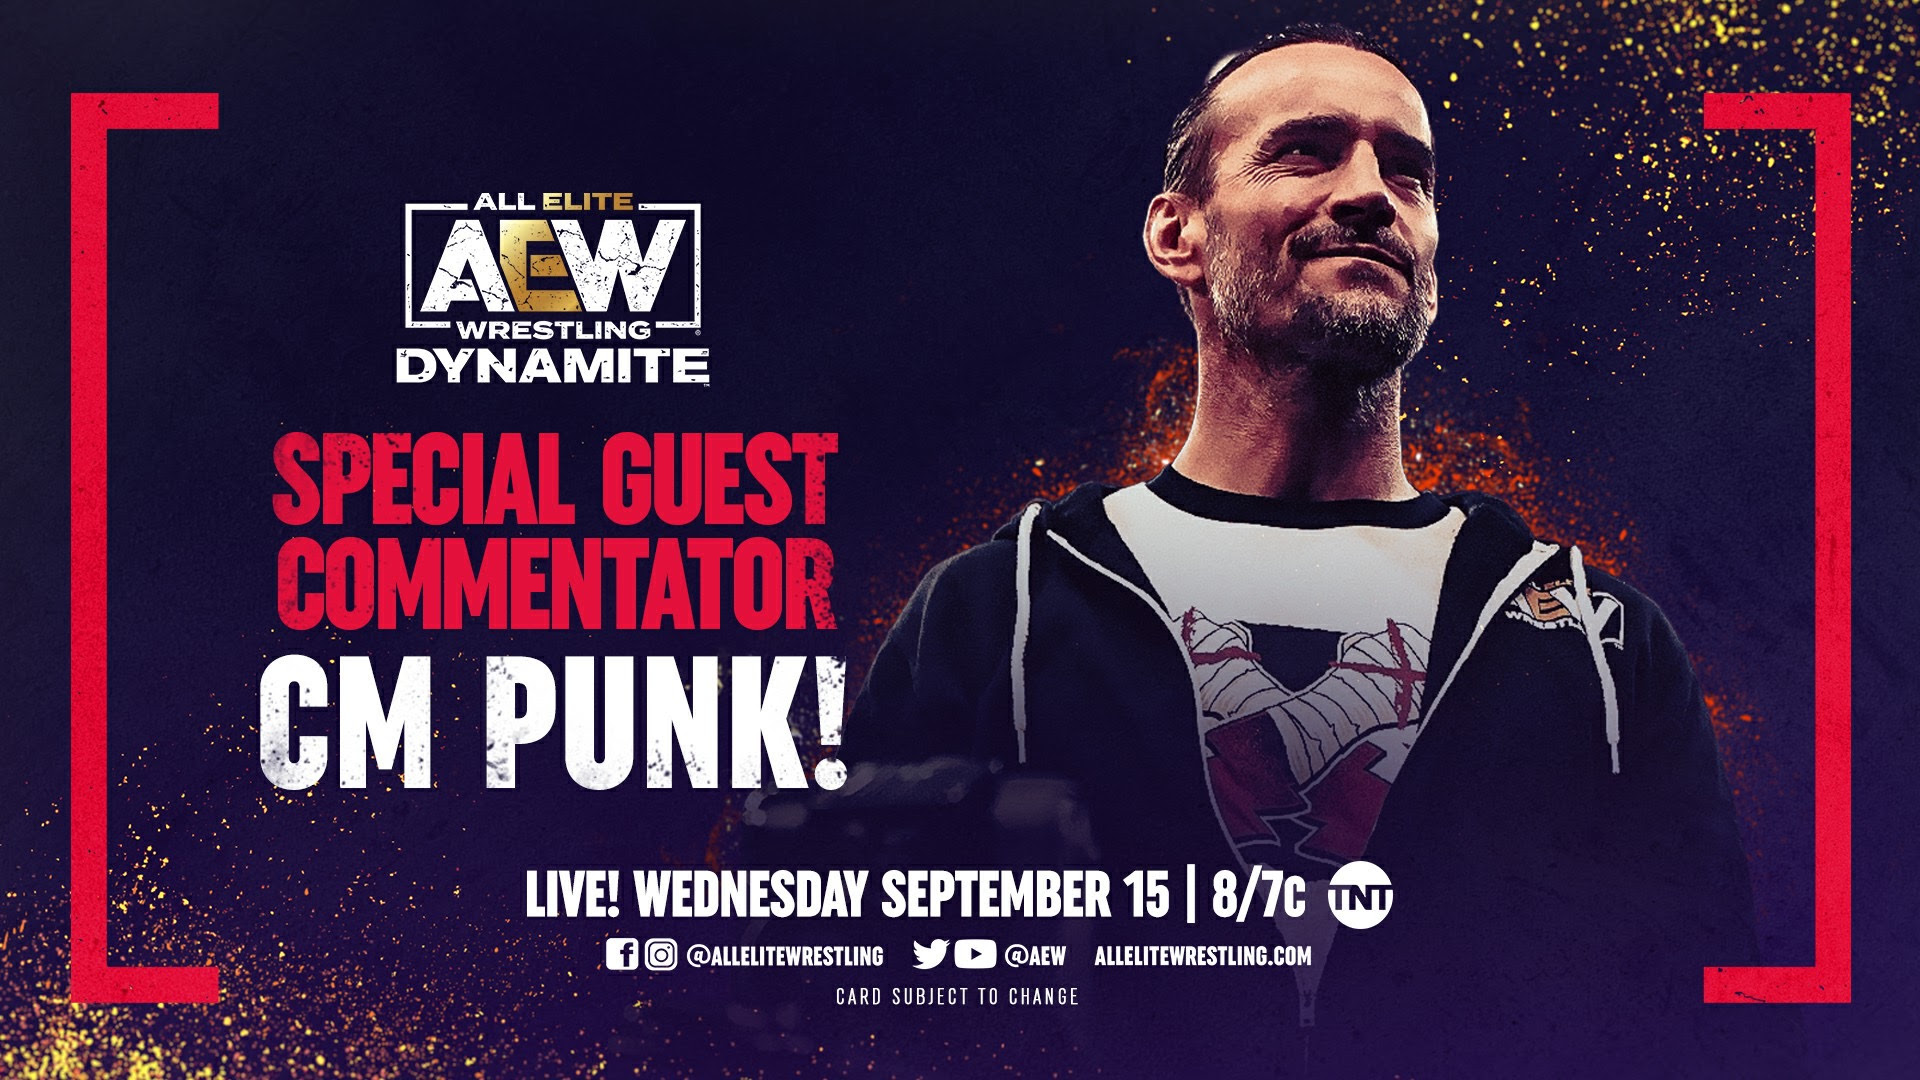 AEW Dynamite Preview: CM Punk On Commentary, Adam Cole In Action